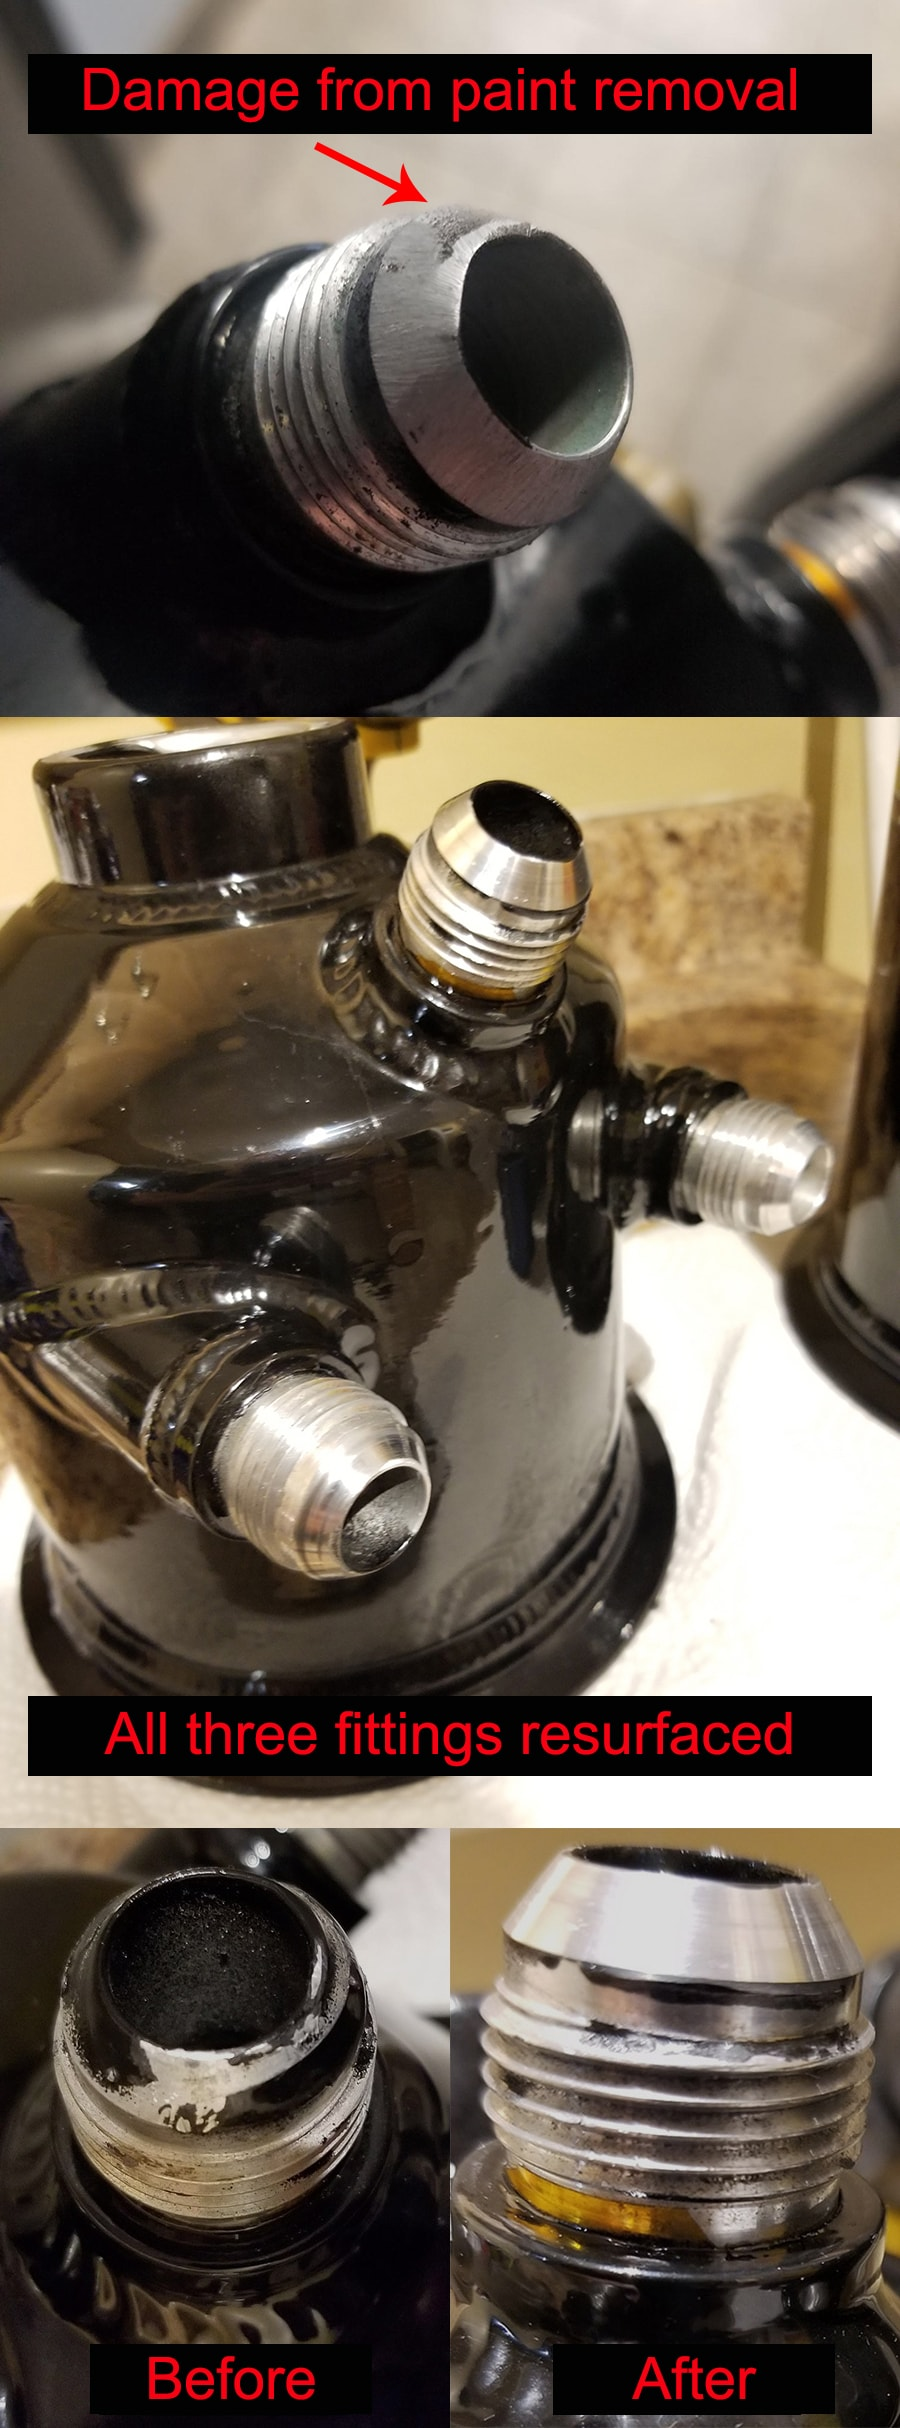 Image of repaired fittings on tank